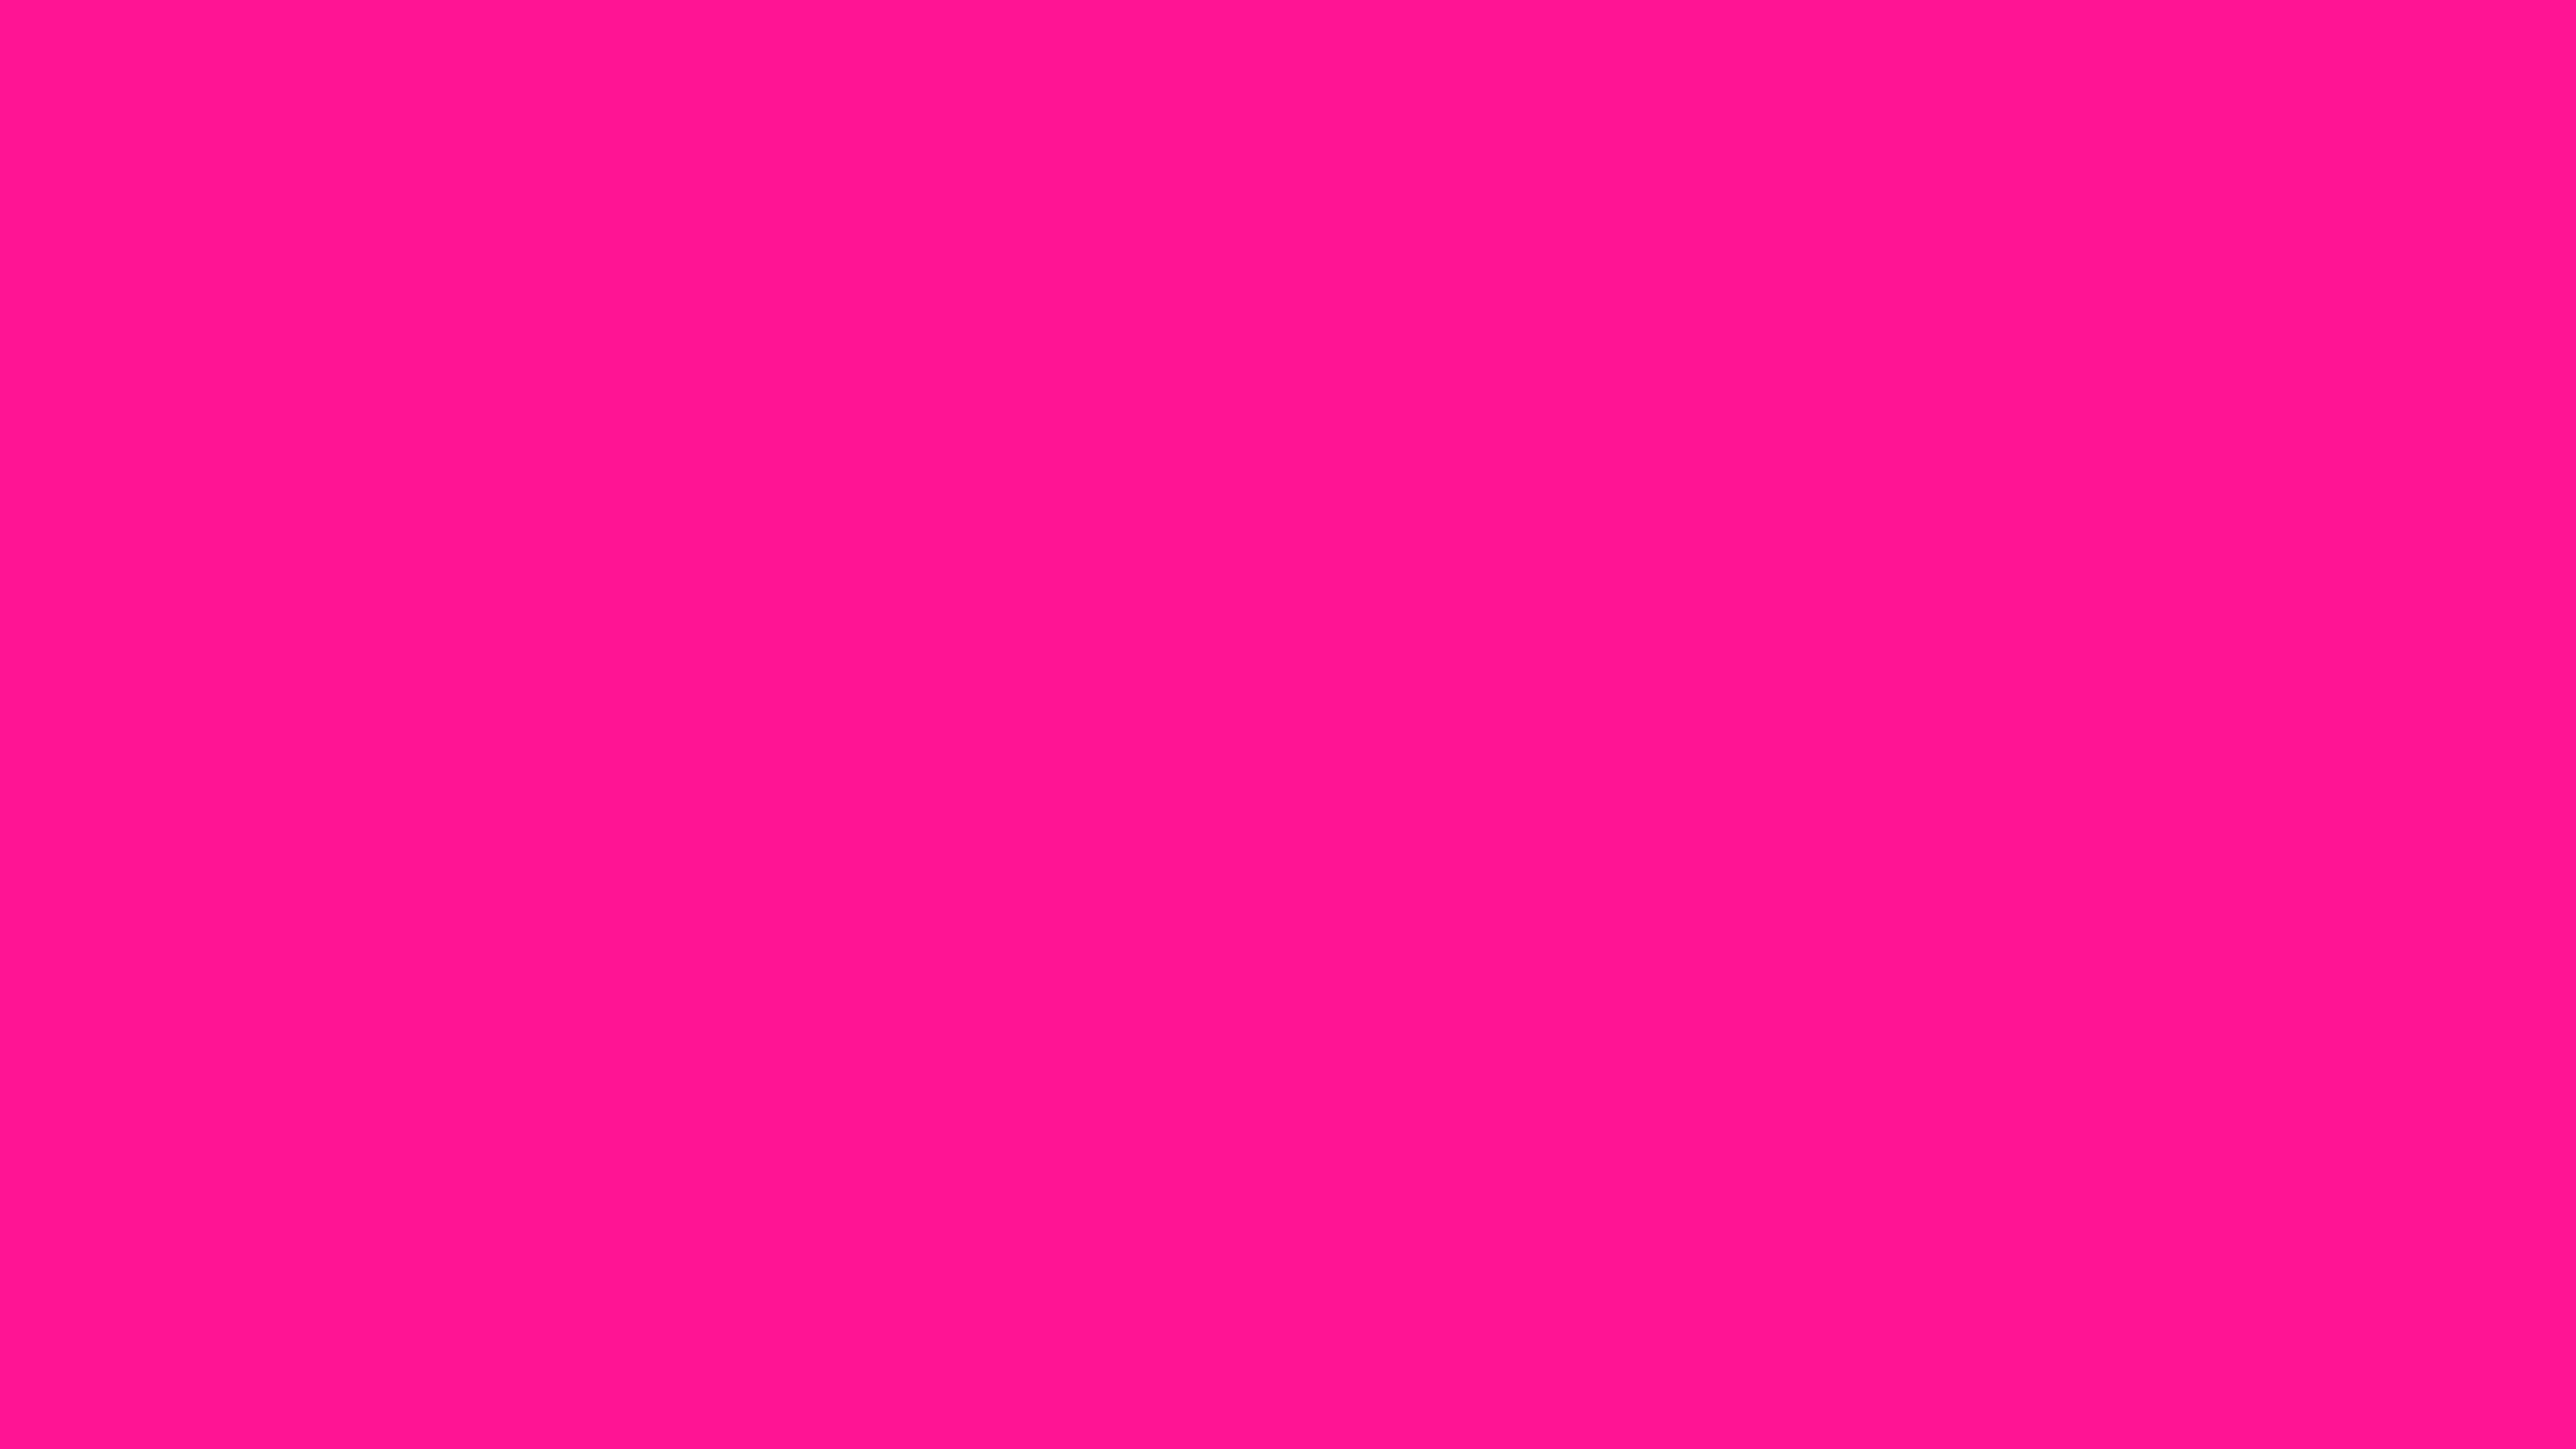 3840x2160 Fluorescent Pink Solid Color Background